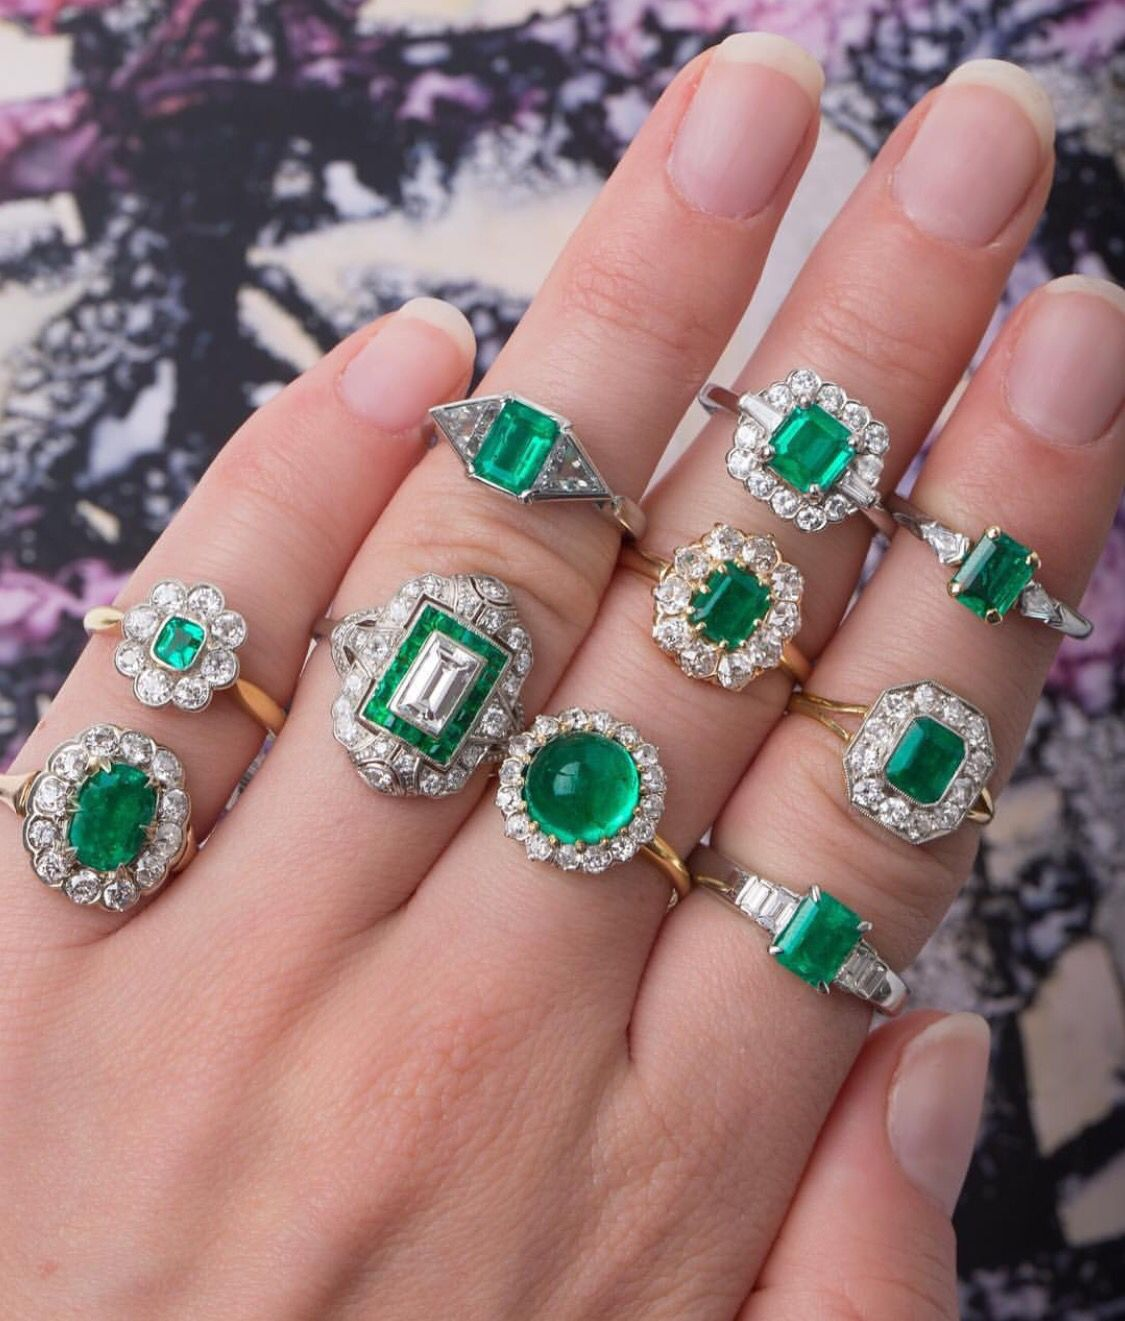 Greens, Emerald rings | Antique Jewelry | Pinterest | Ring, Green ...